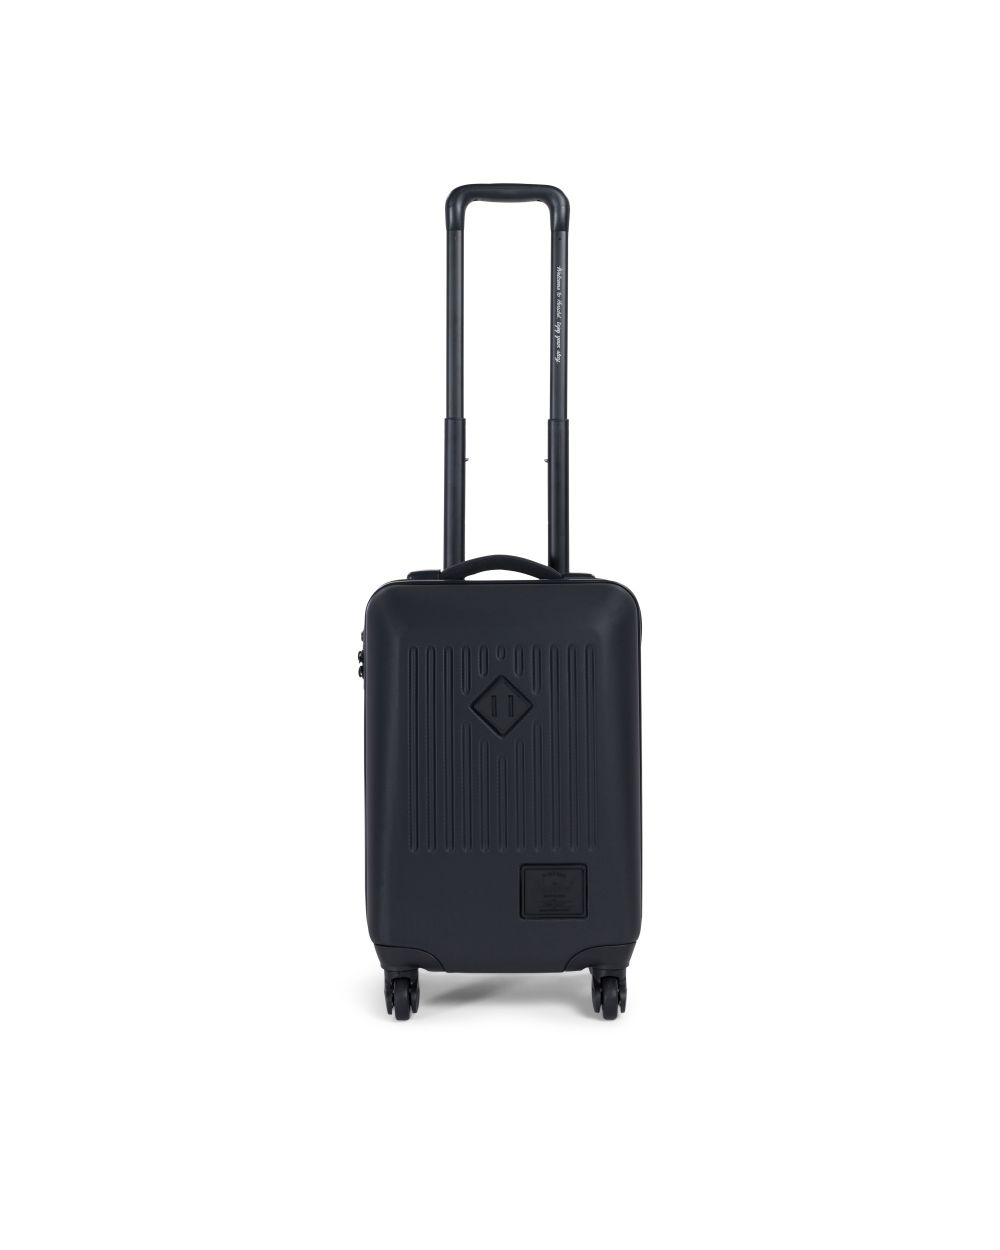 Herschel Hard Shell Trade Luggage - Carry-On.jpg